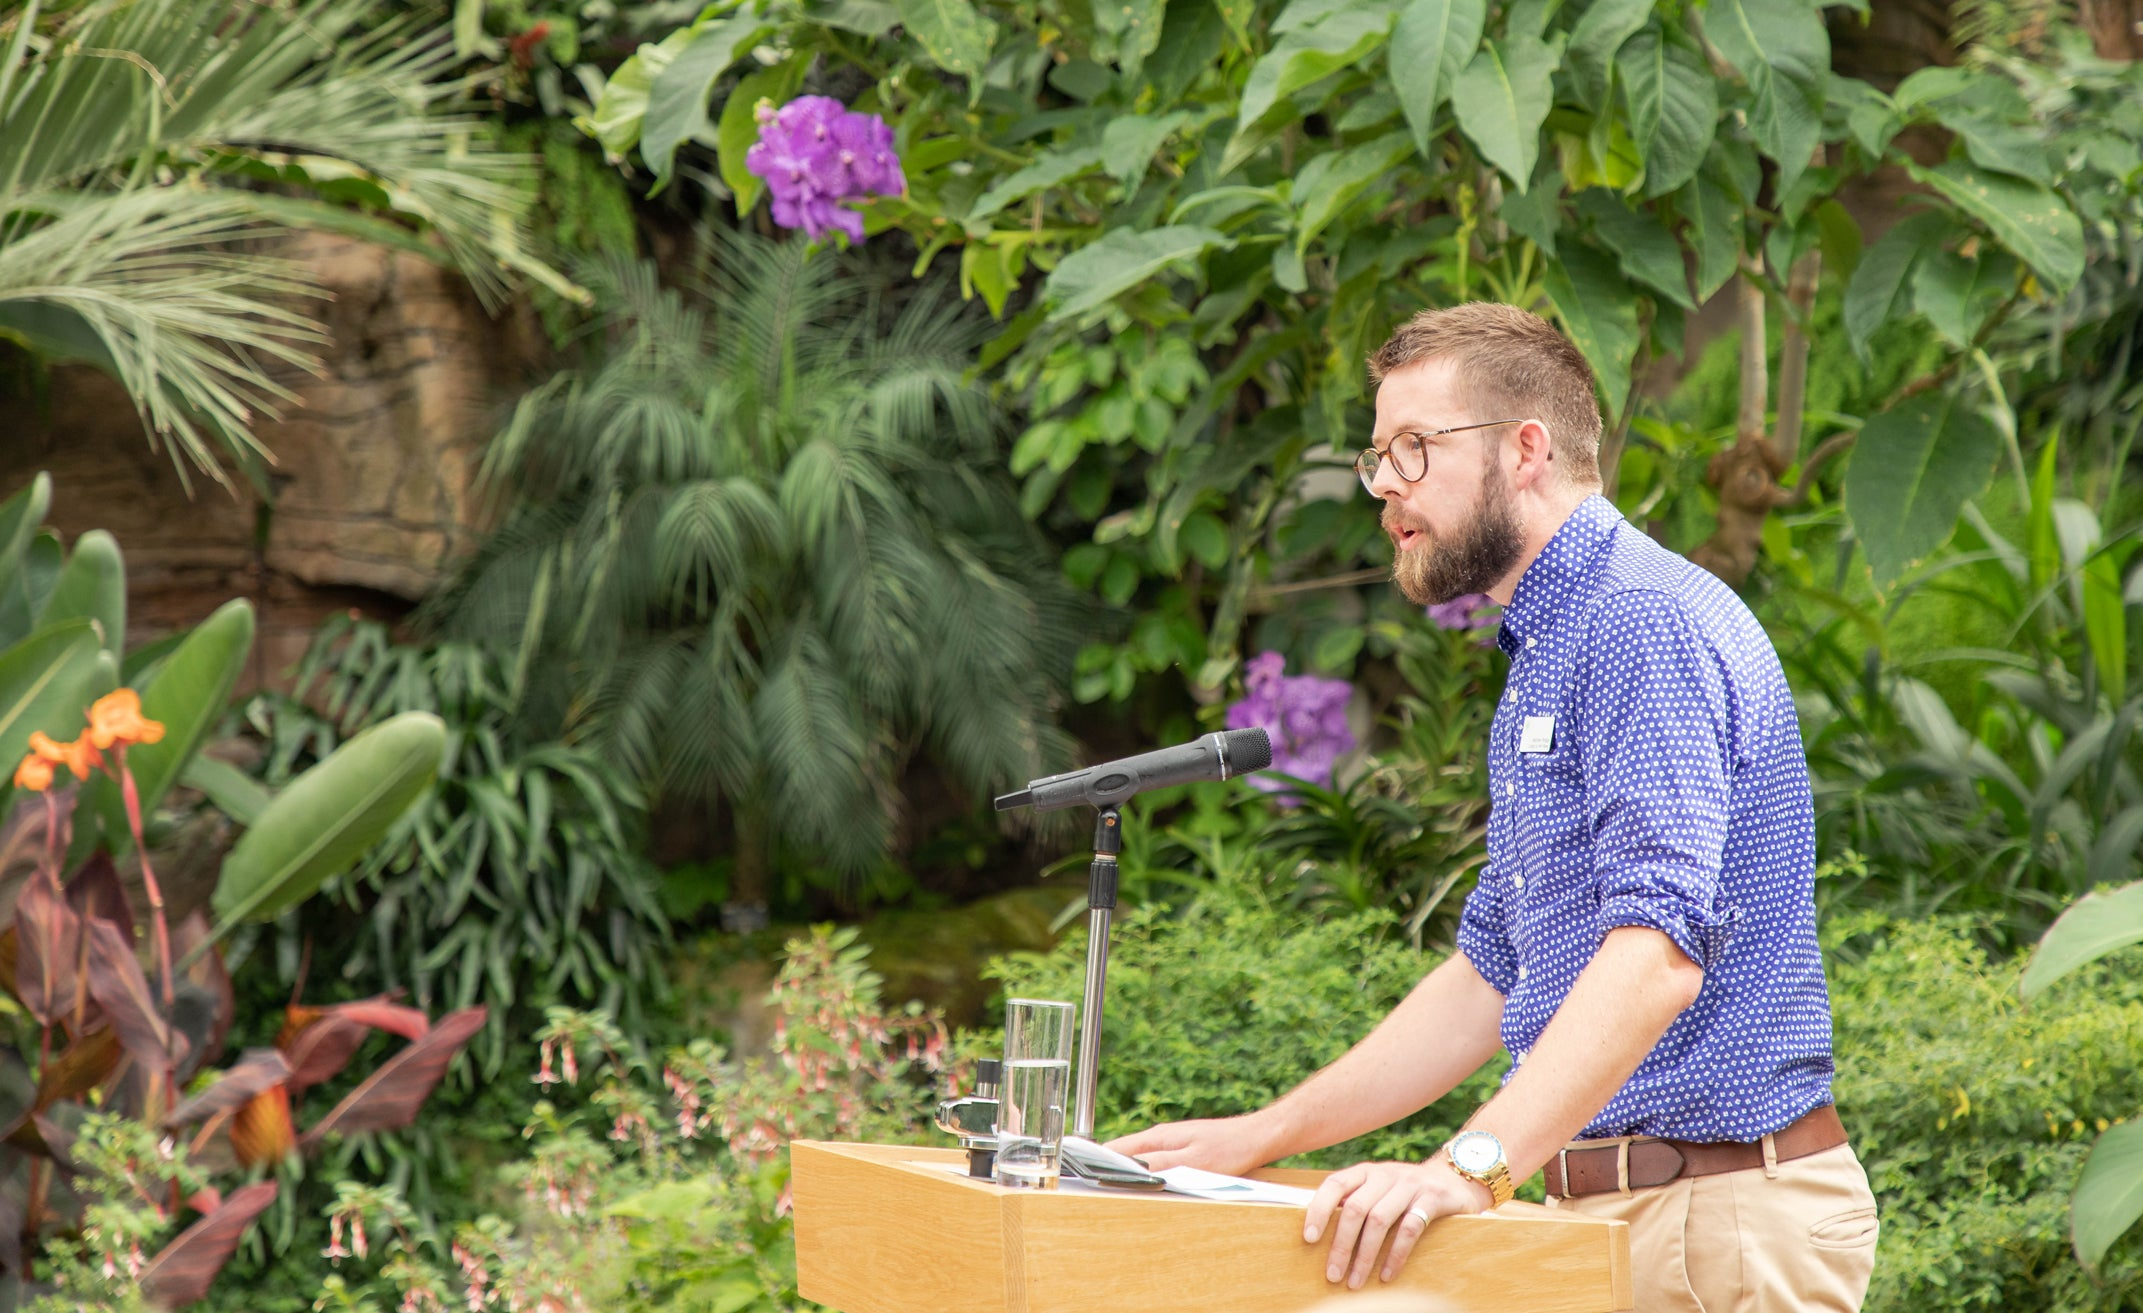 RHS School of Horticulture Graduation Ceremony 2019